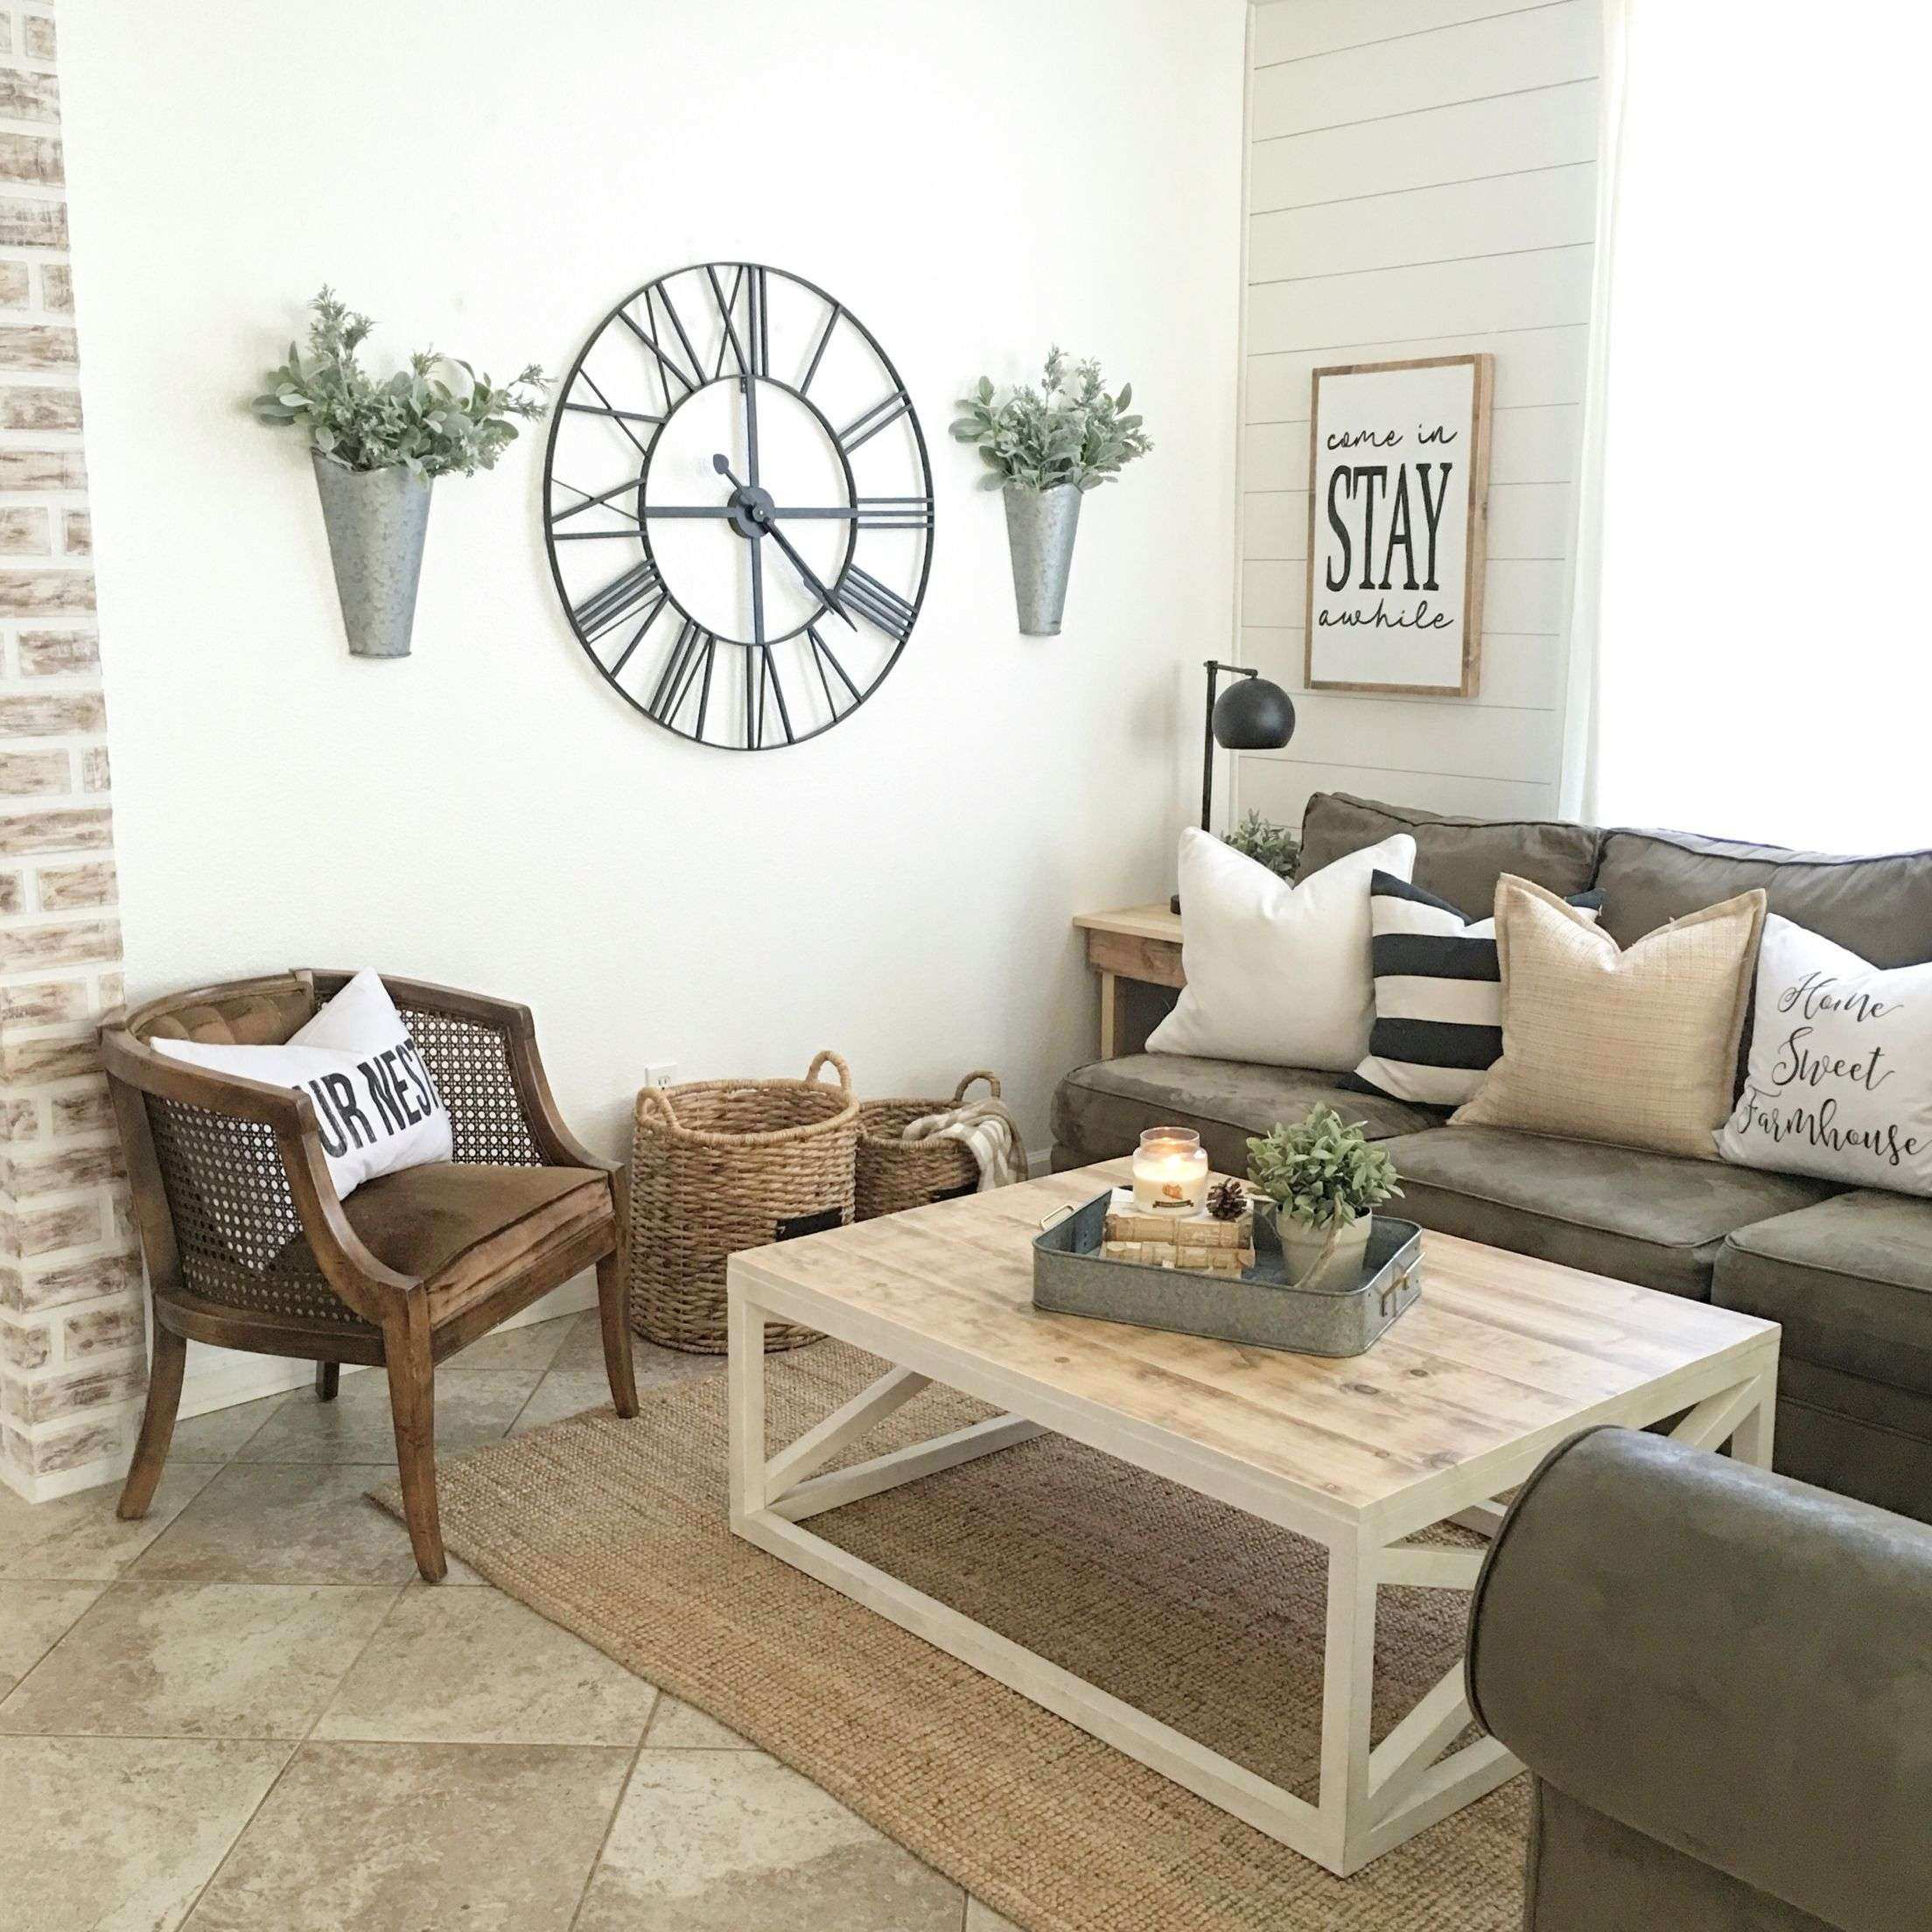 decorating ideas for living rooms country style new room fresh cool accent table decor farmhouse next mirrored side antique folding ikea clothes storage small round foyer home